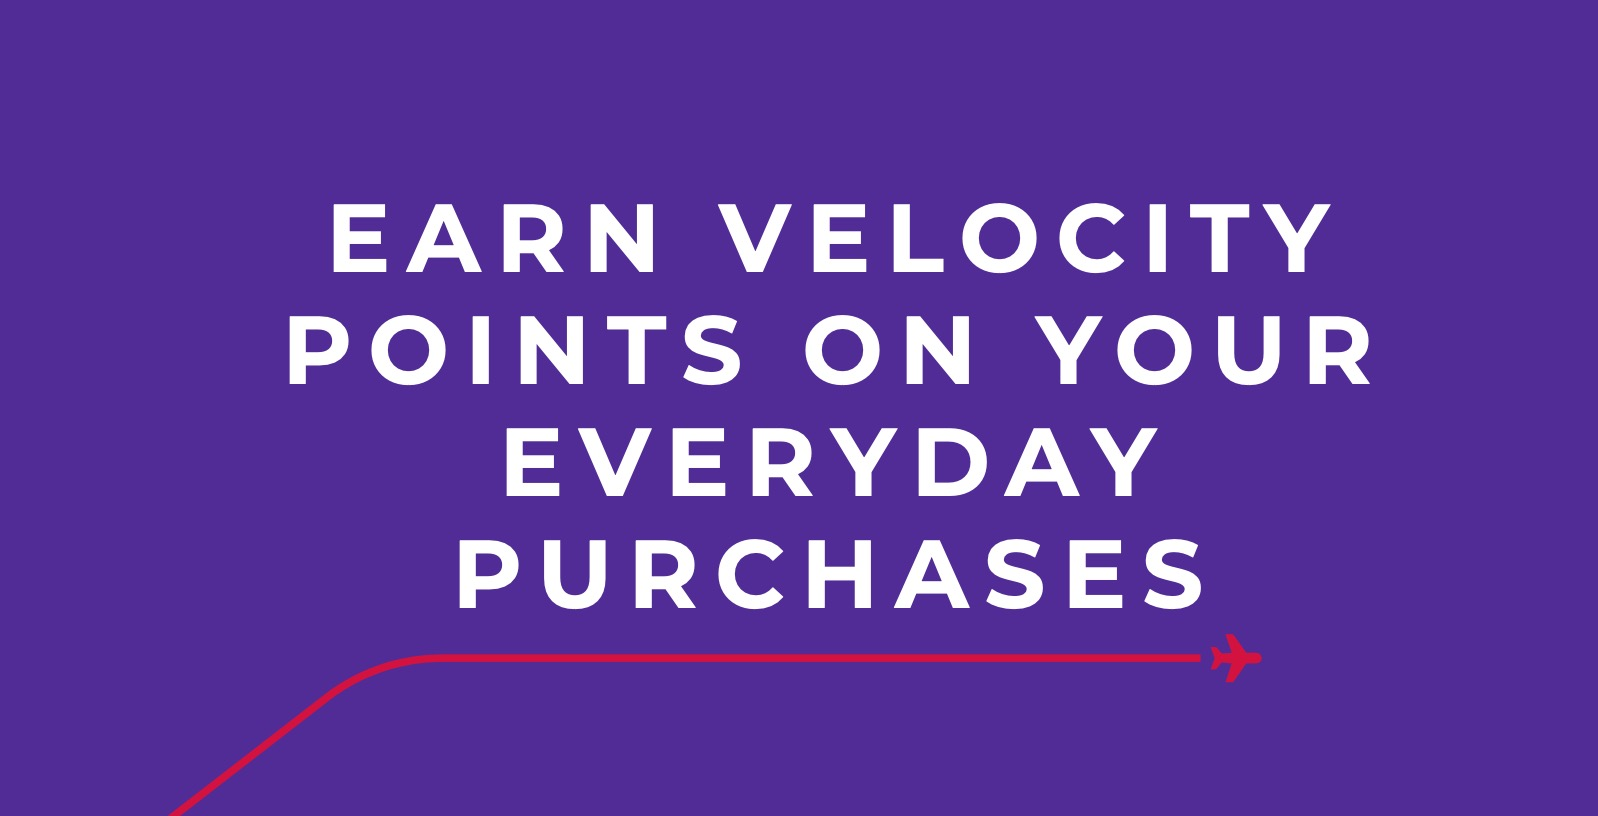 Earning Velocity points on everyday purchases